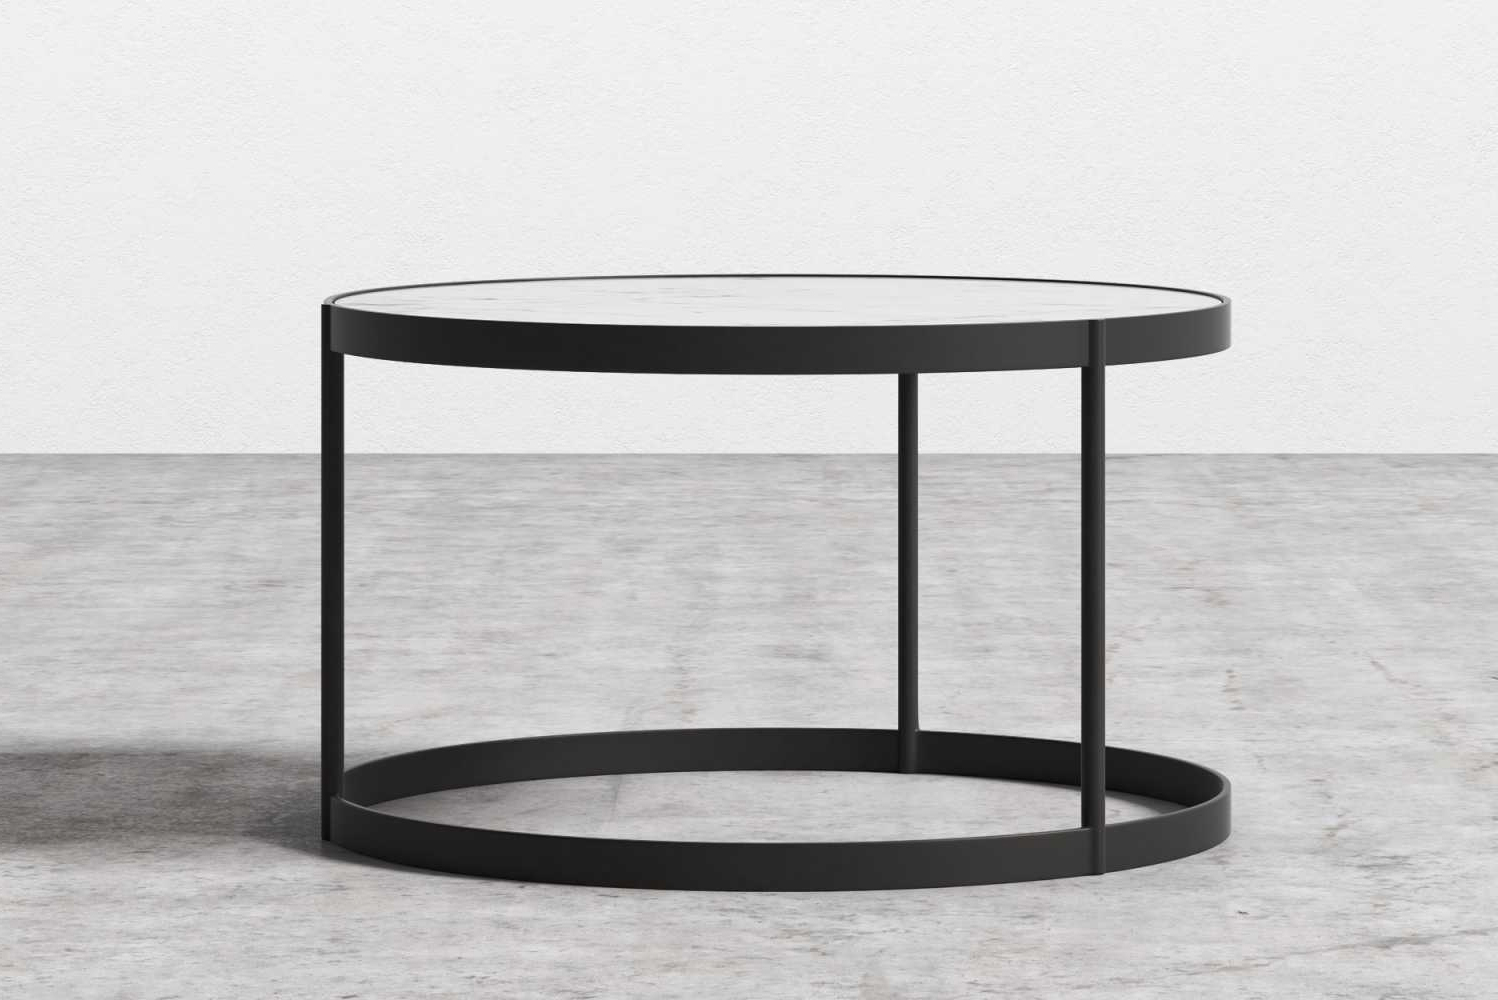 The Malin coffee table has a smooth marble surface and a matte black metal base.